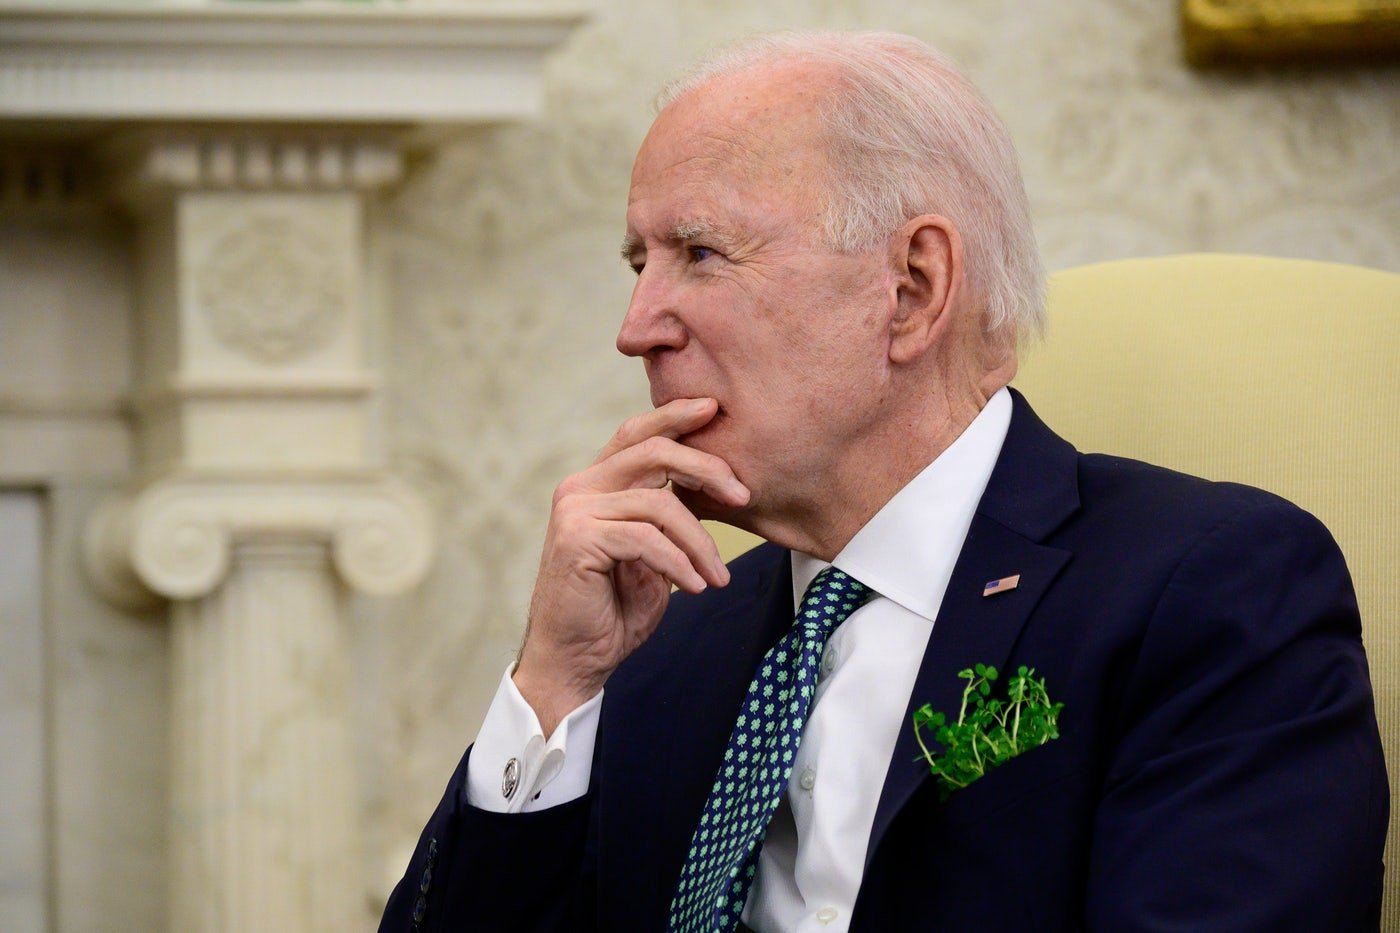 Joe Biden listens during a conference call in the Oval Office.